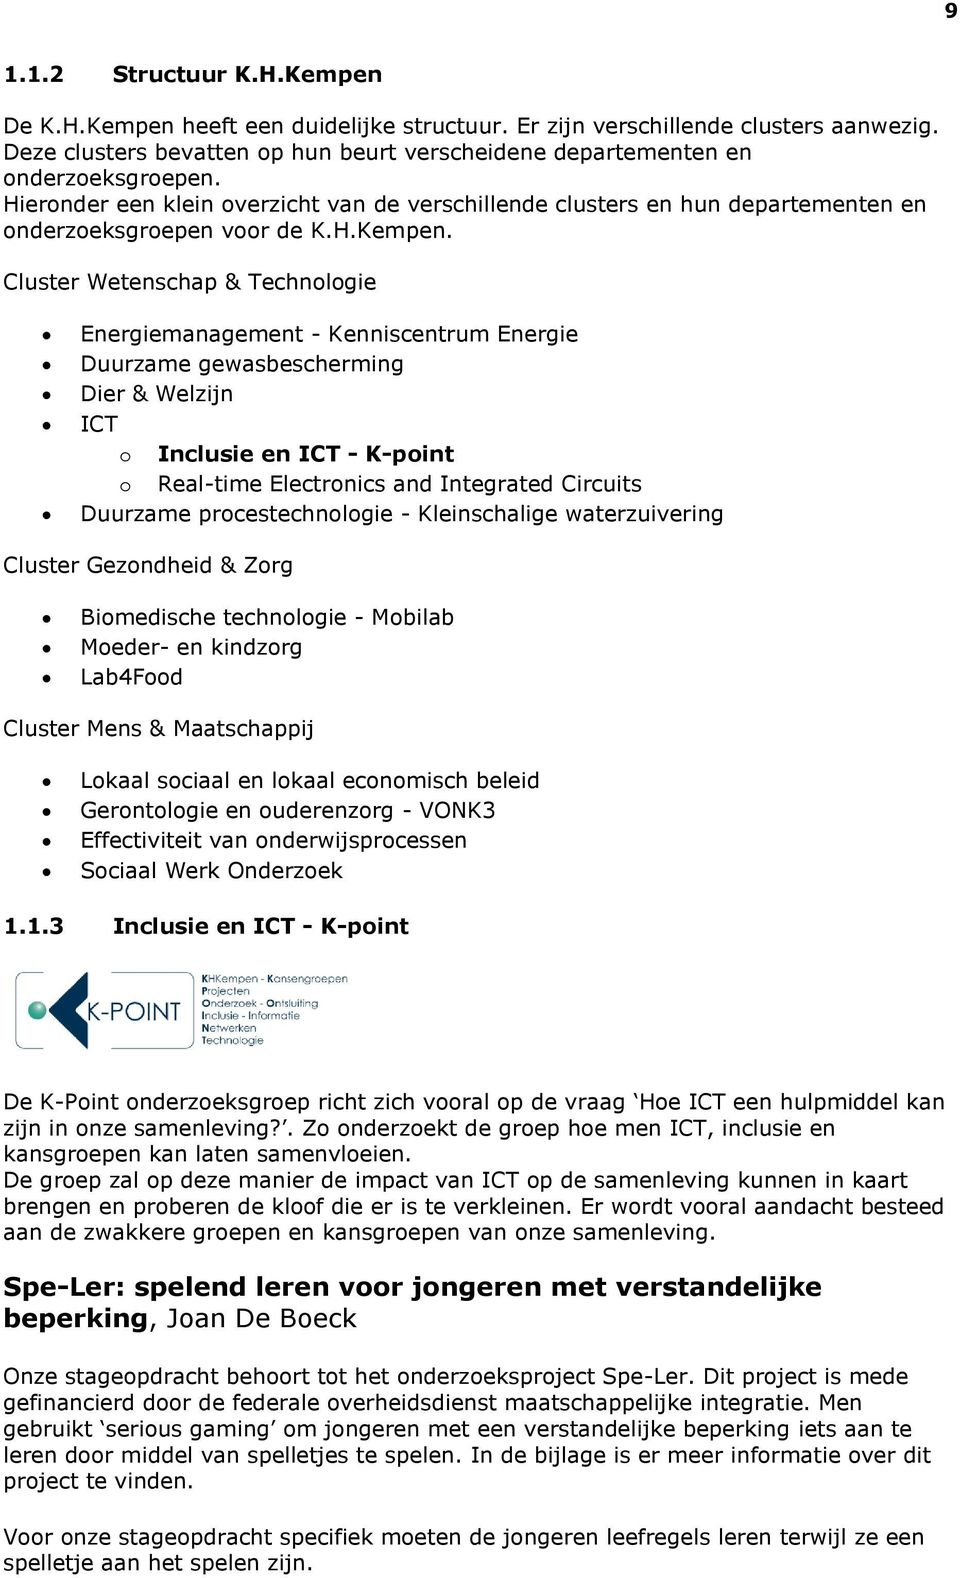 Cluster Wetenschap & Technologie Energiemanagement - Kenniscentrum Energie Duurzame gewasbescherming Dier & Welzijn ICT o Inclusie en ICT - K-point o Real-time Electronics and Integrated Circuits